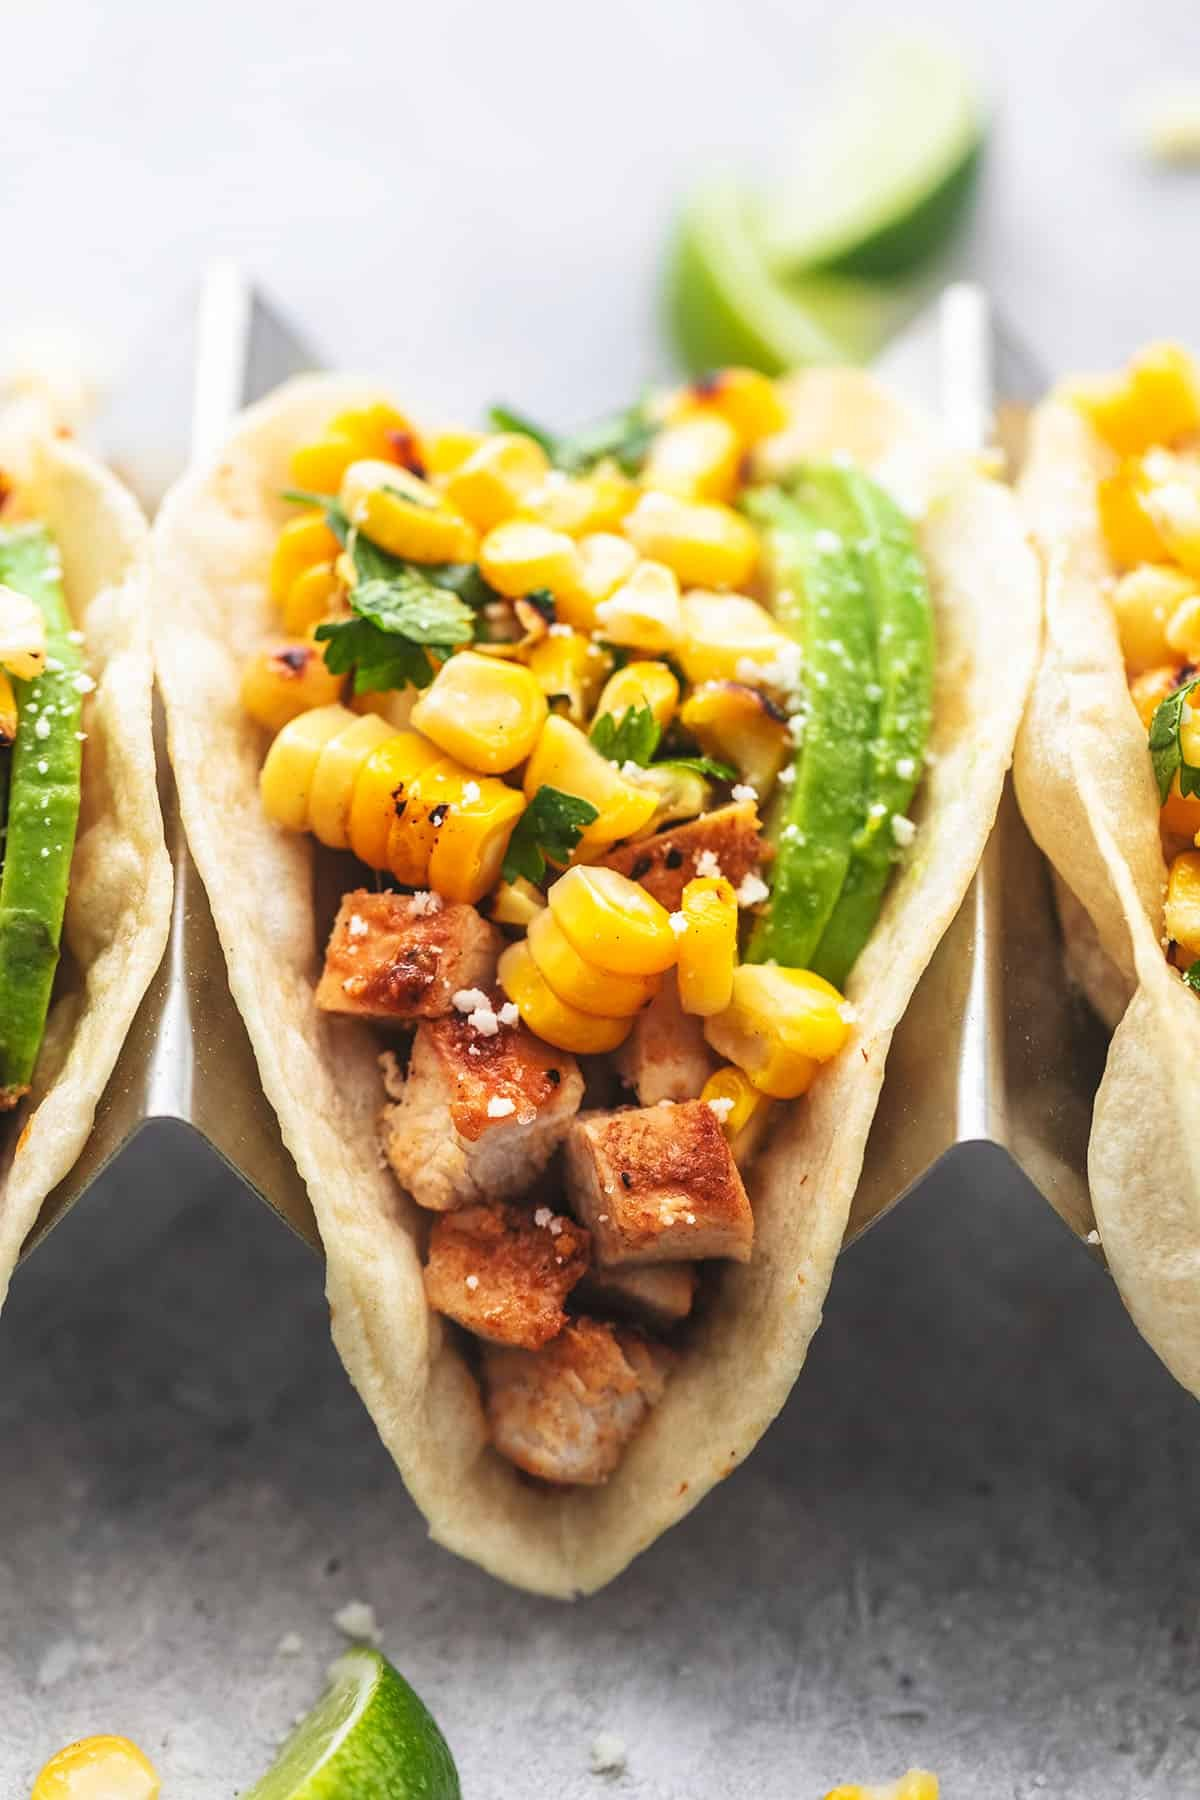 up close single taco filled with chicken in taco holder topped with corn salsa